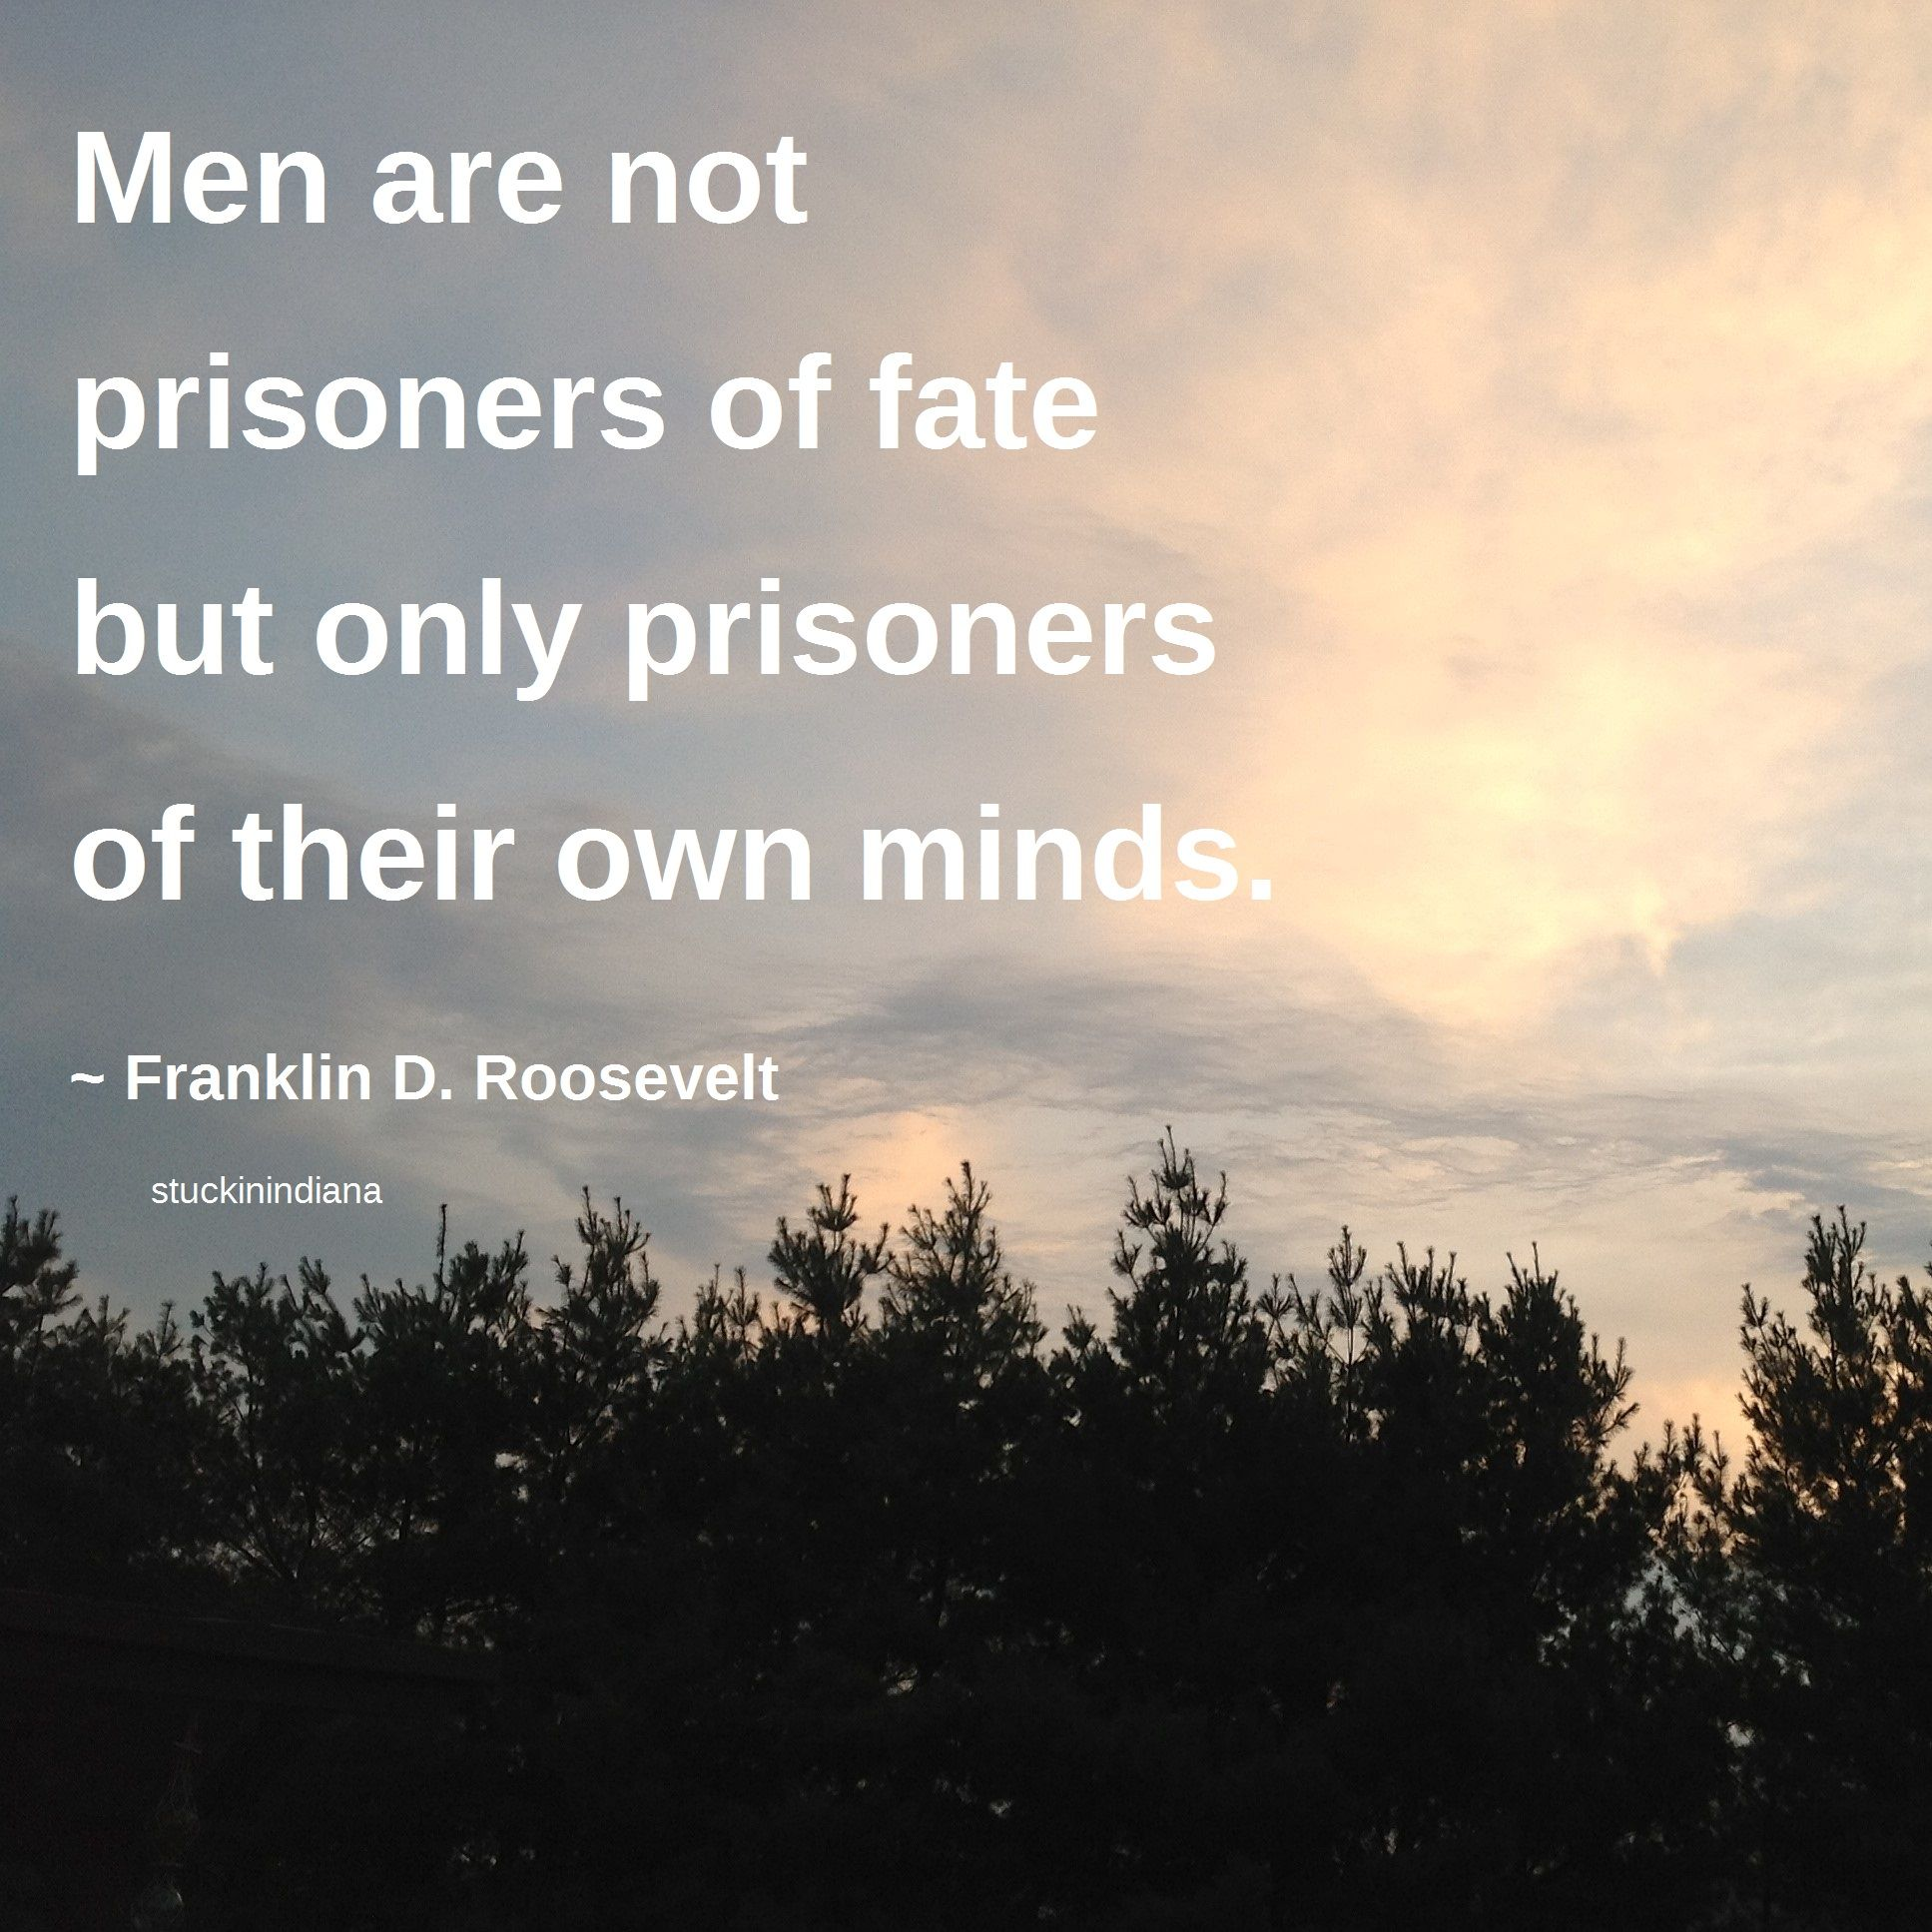 Franklin D Roosevelt Quotes Men Are Not Prisoners Of Fate But Only Prisoners Of Their Own